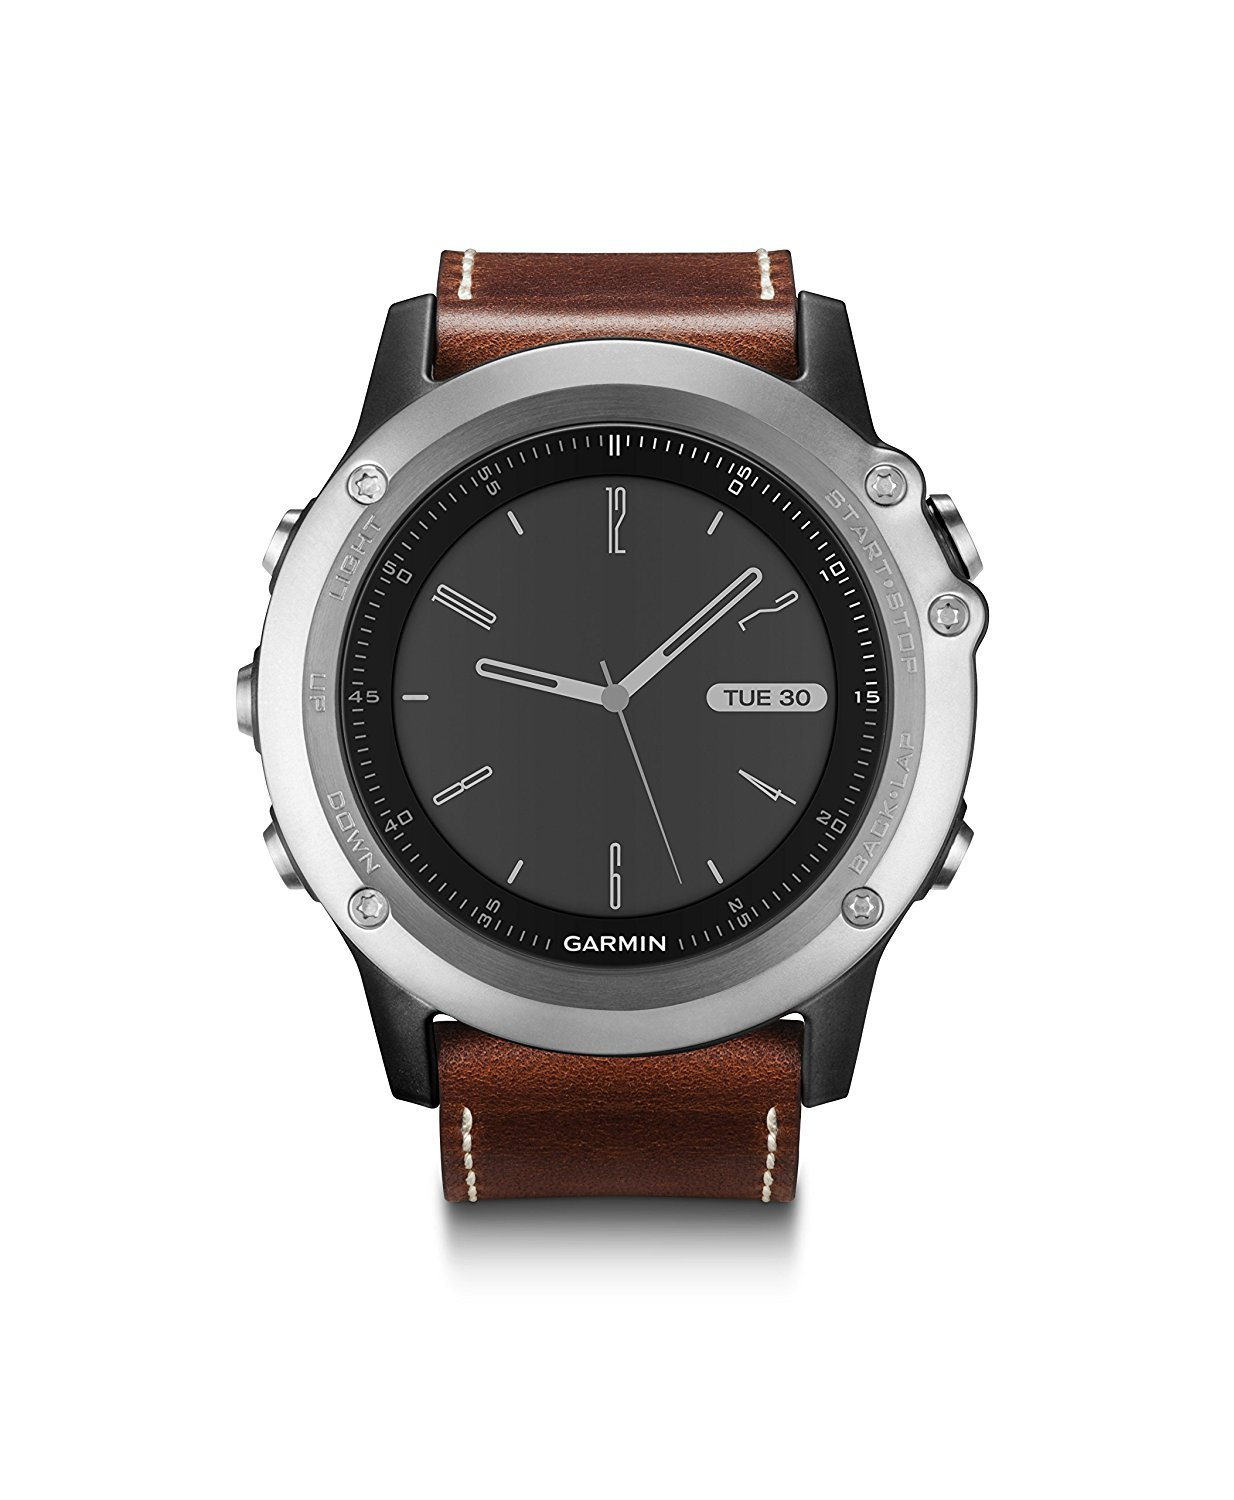 Garmin Fenix 3, Sapphire, Silver/Leather (Certified Refurbished)